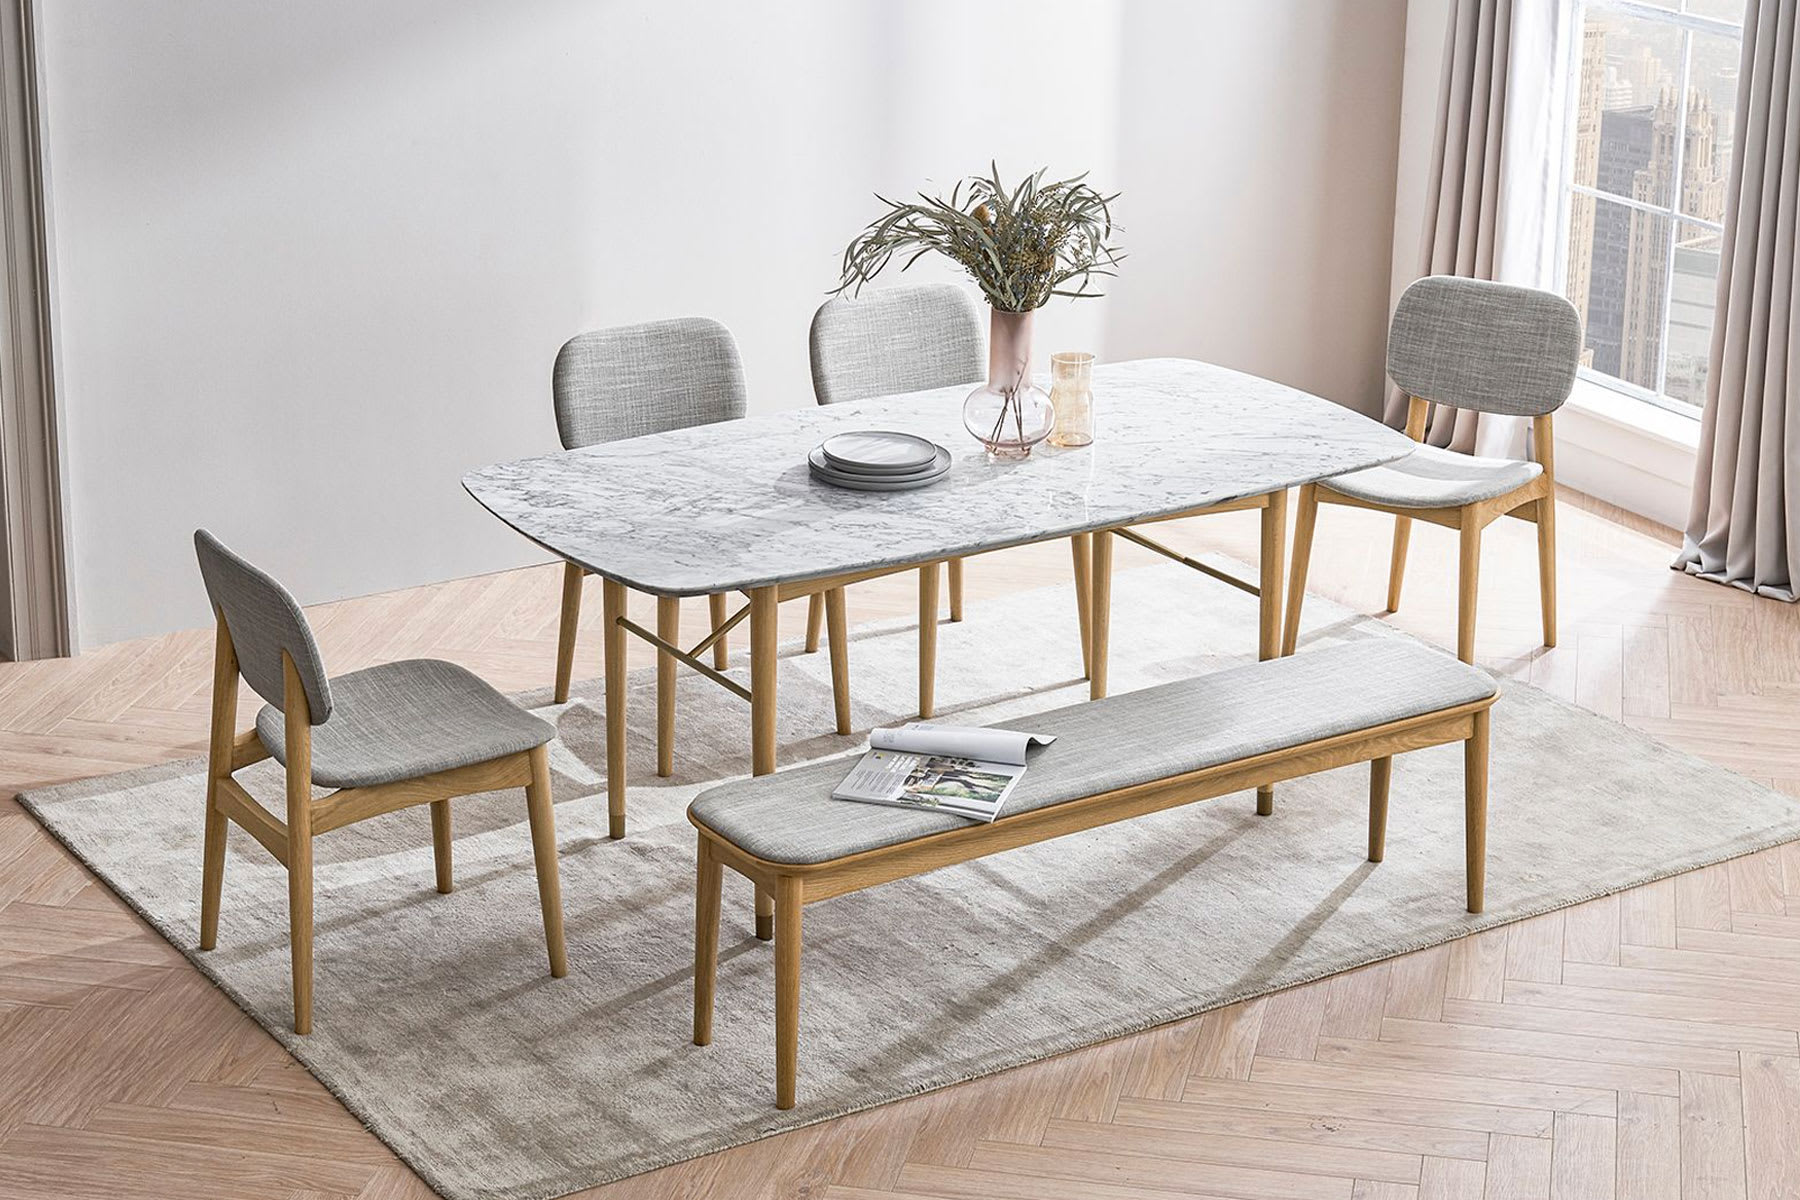 Rounded marble tapletop dining table, chairs and plant in dining room